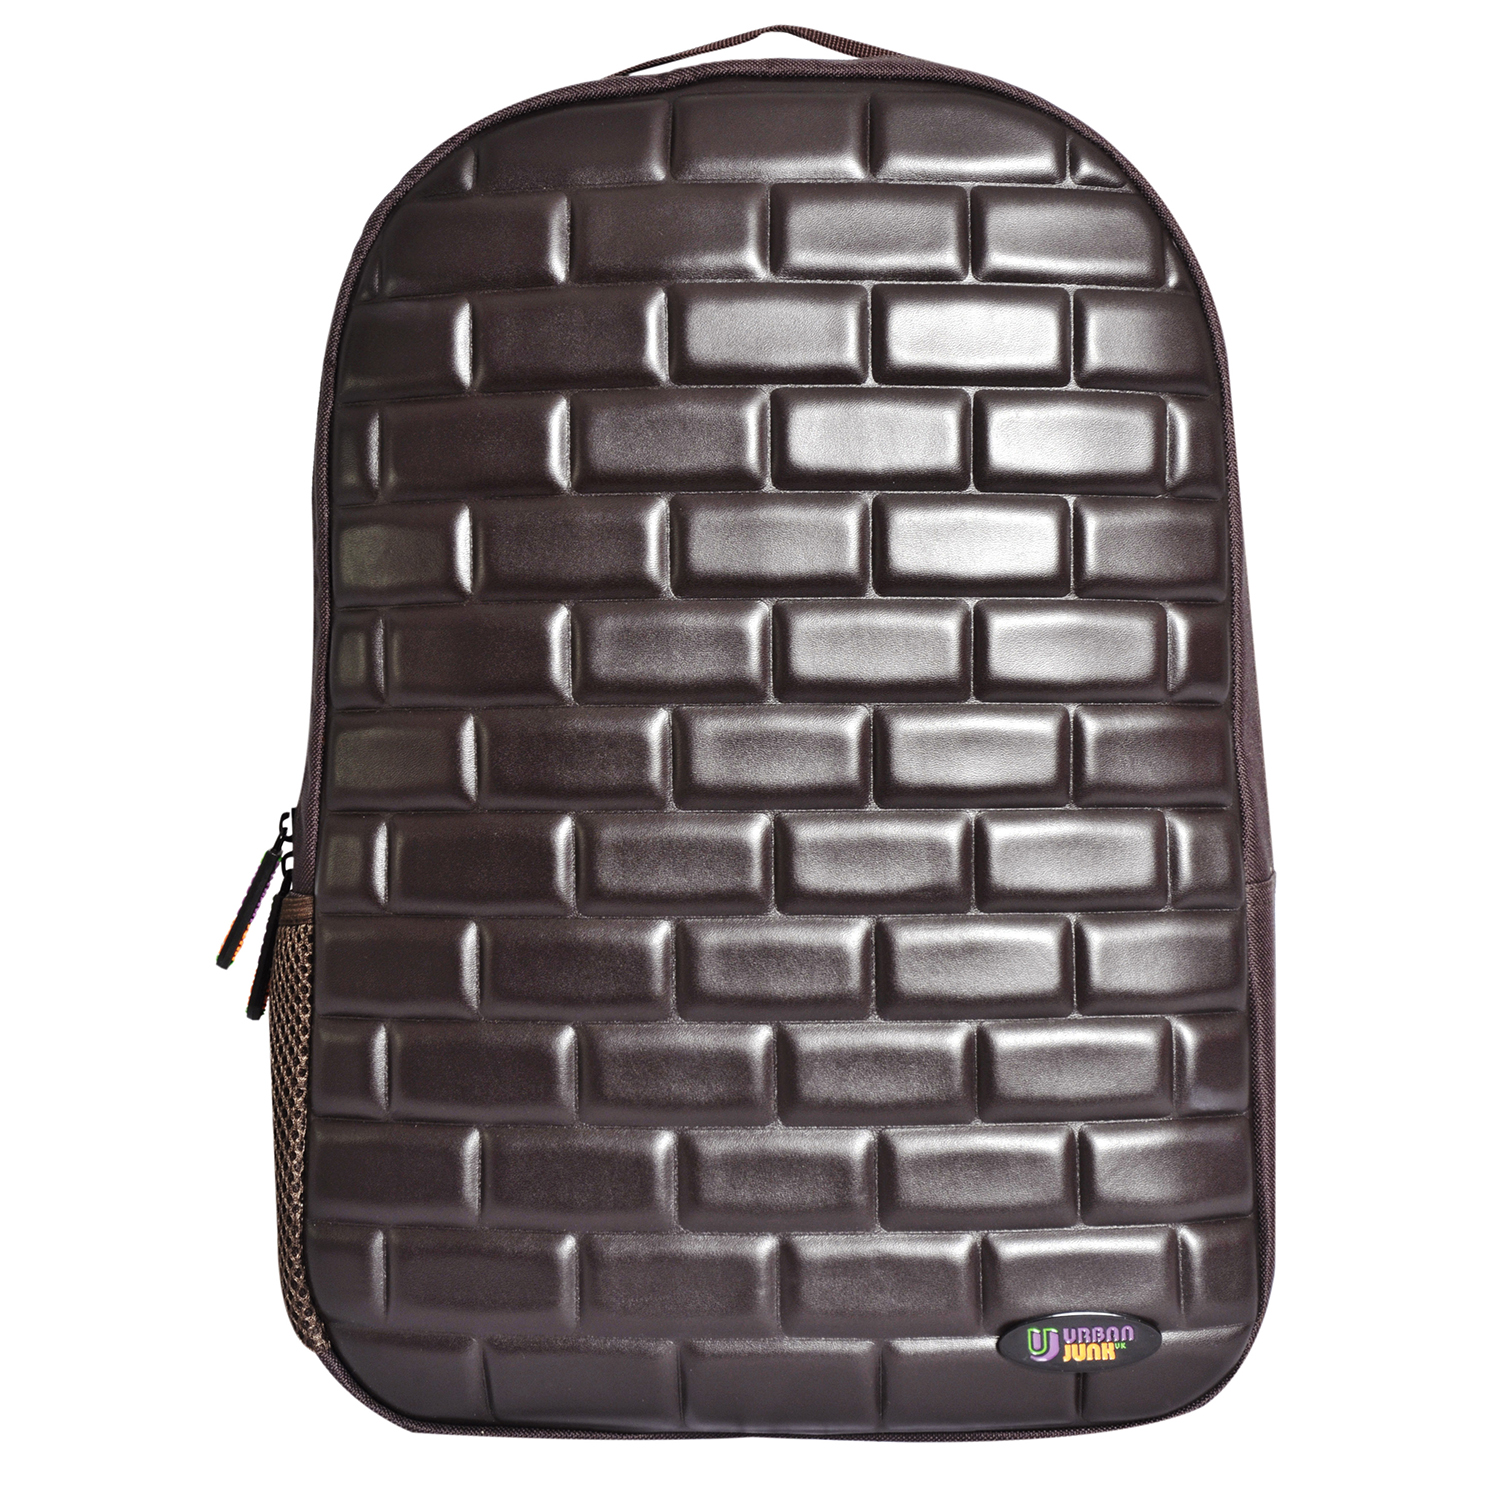 Urban Junk – Brixi Brown 3rd Dimension Embossed Rucksack/Backpack